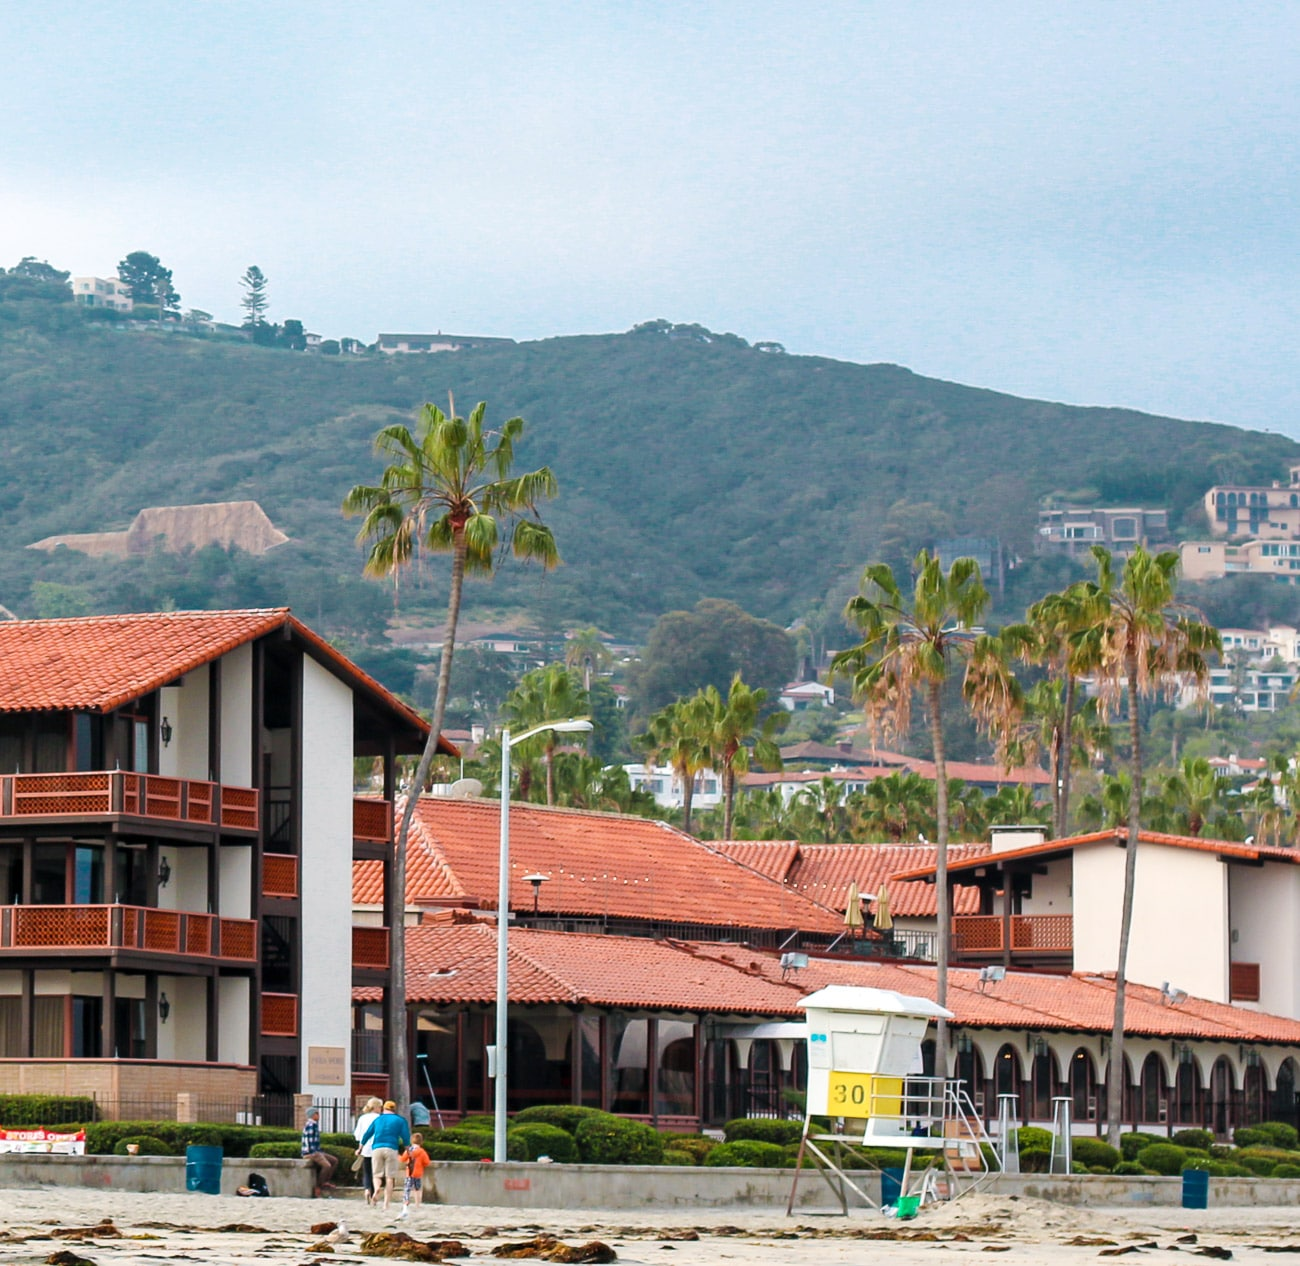 La Jolla Shores Hotel is on the beach in San Diego.